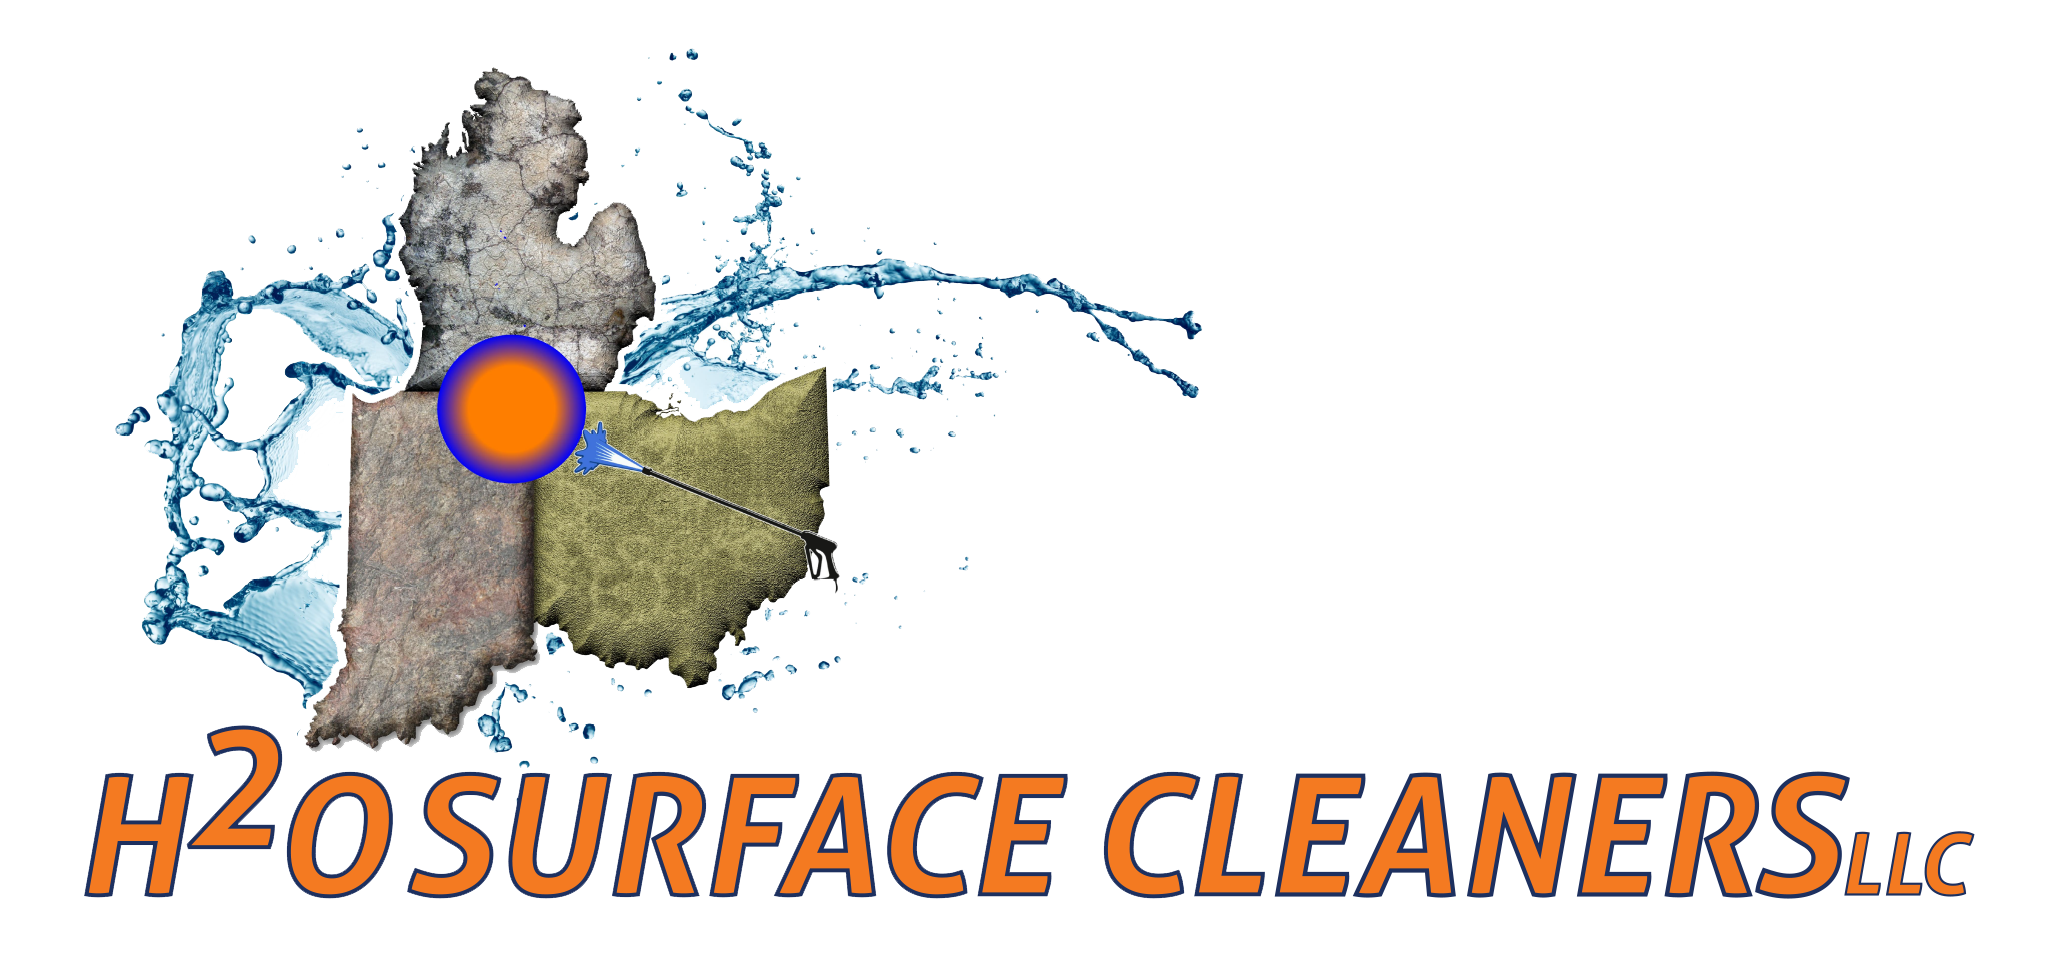 H2O Surfaces Cleaners